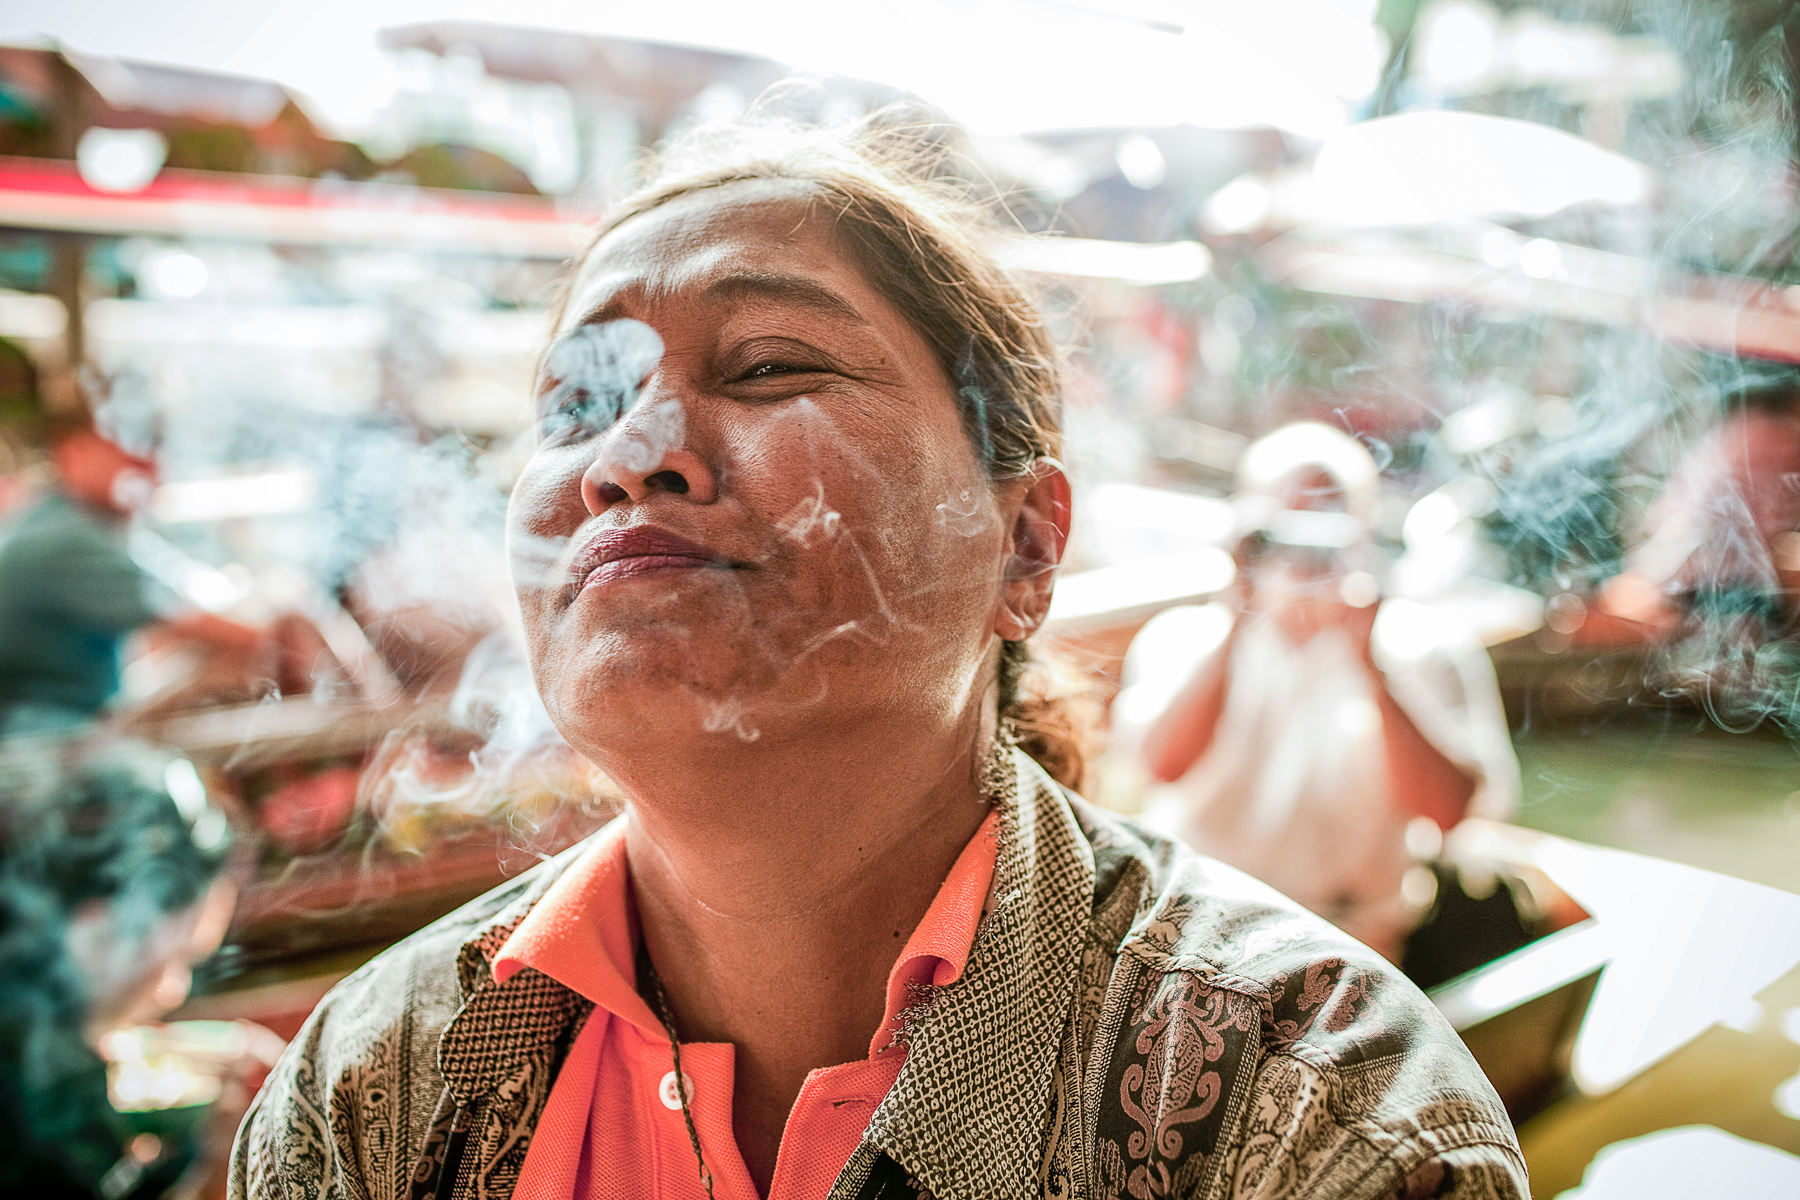 Thailand - Woman Smoking